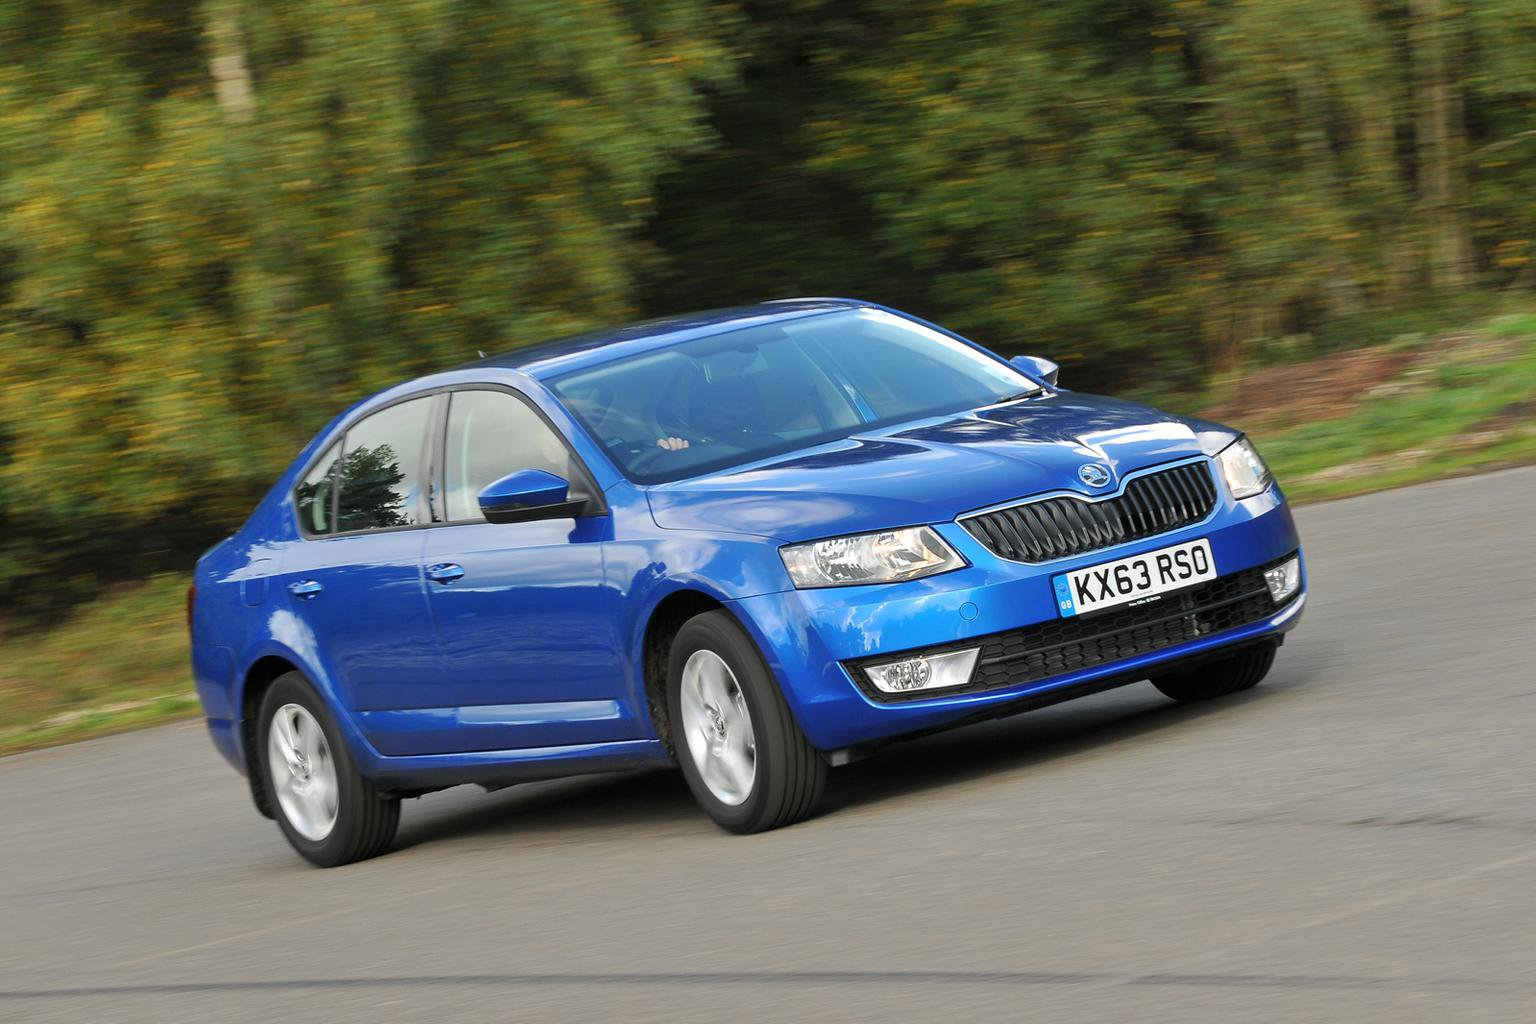 Our cars: Skoda Octavia and Lexus IS